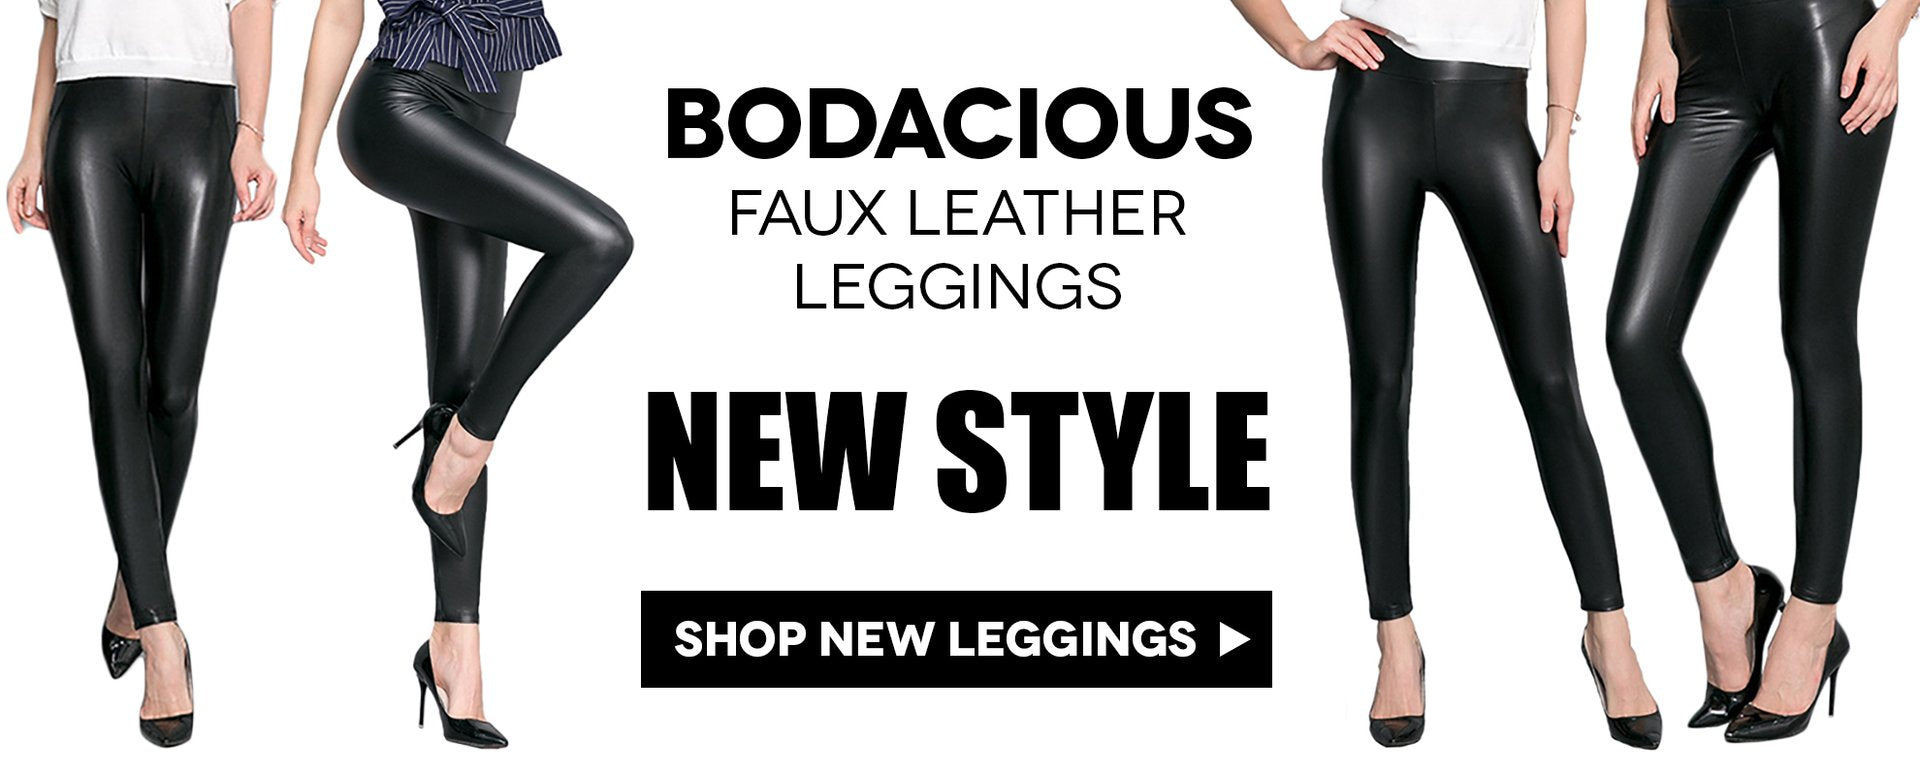 Shop new Bodacious Faux Leather Leggings for Women